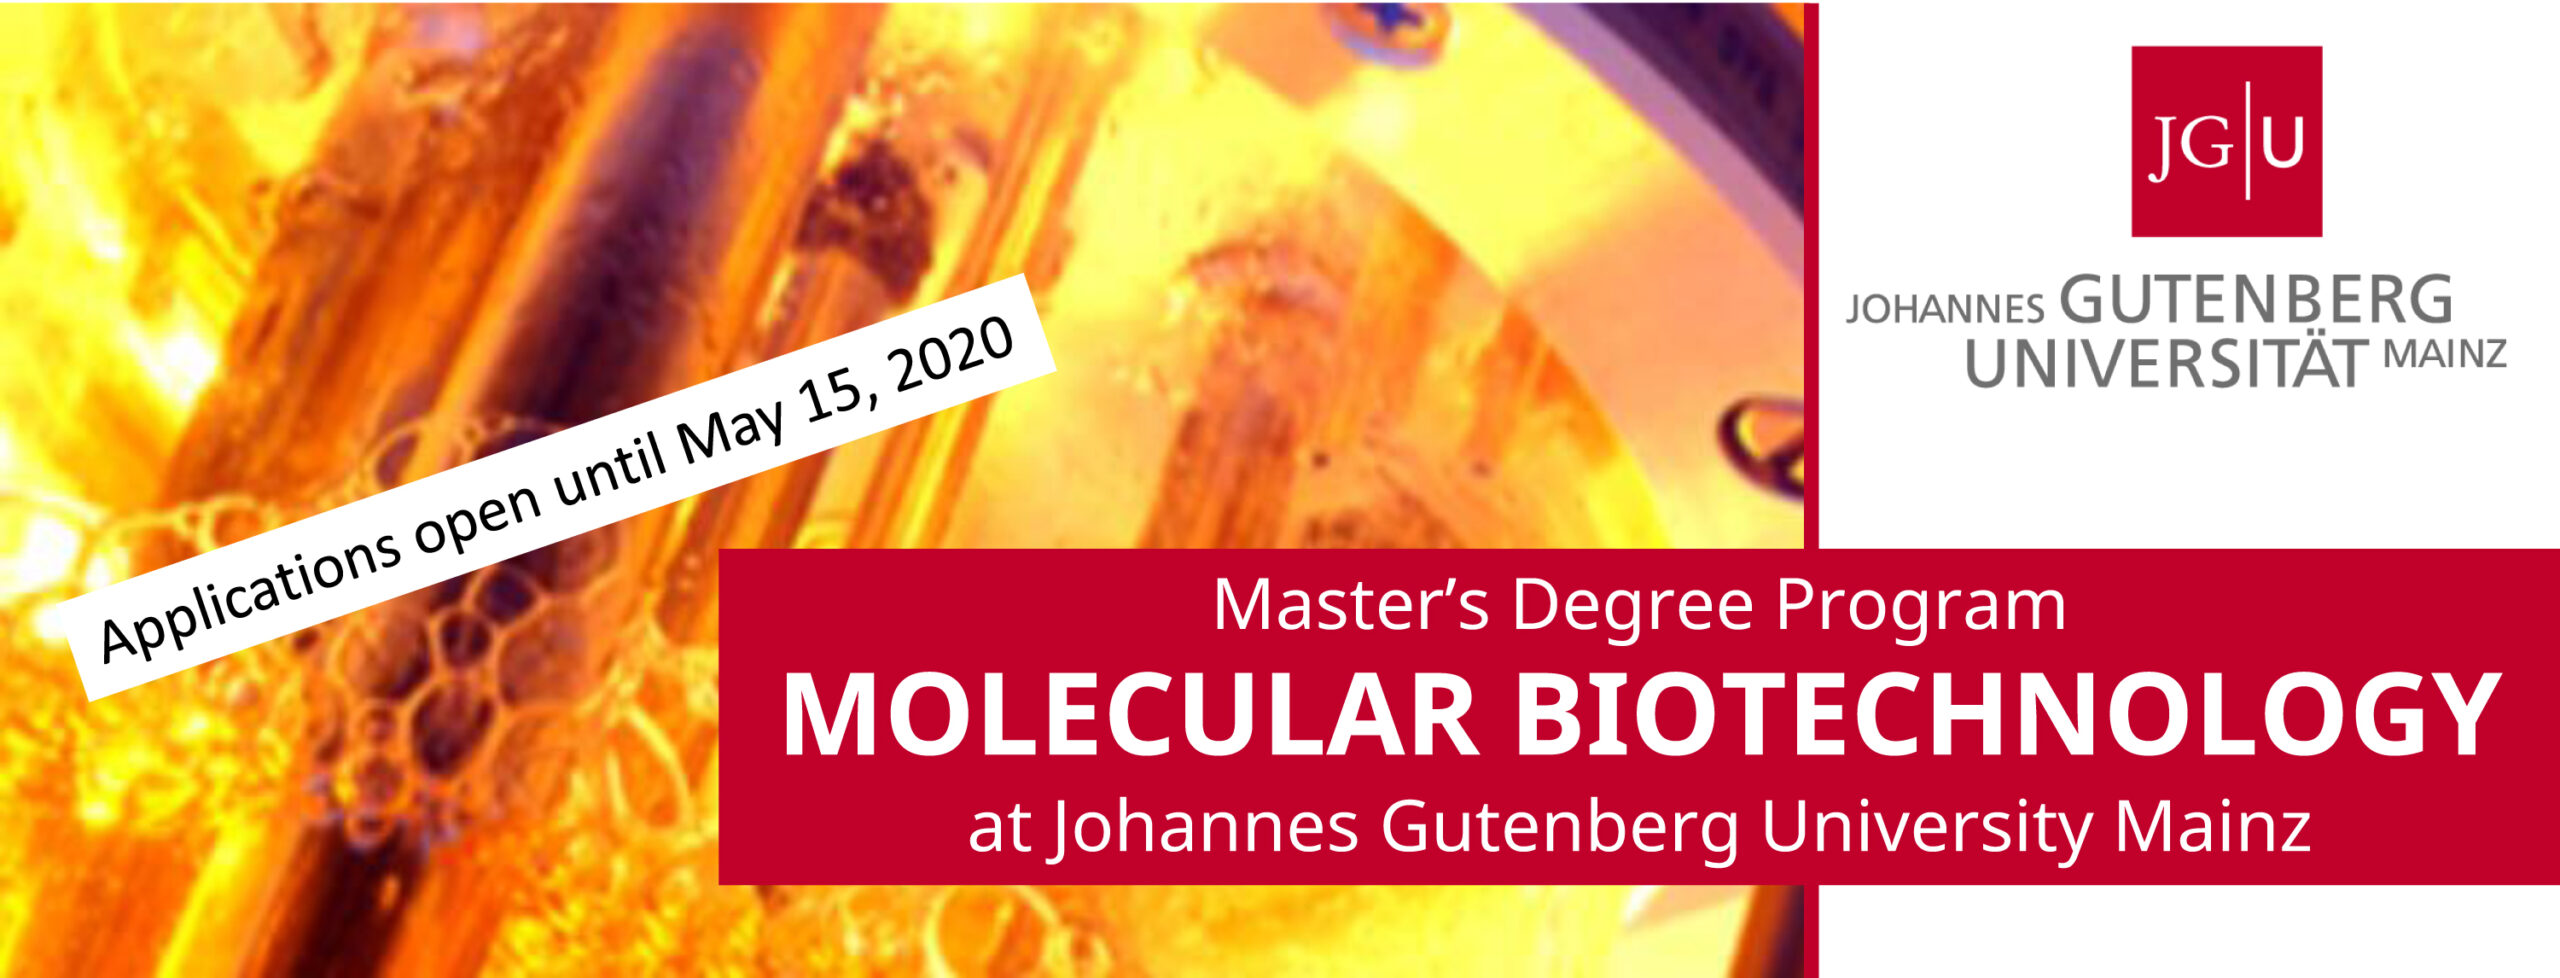 Masters Program Molecular Biotechnology starts in winter term 2020/2021. Application is possible until May 15,2020 through Jogustine portal